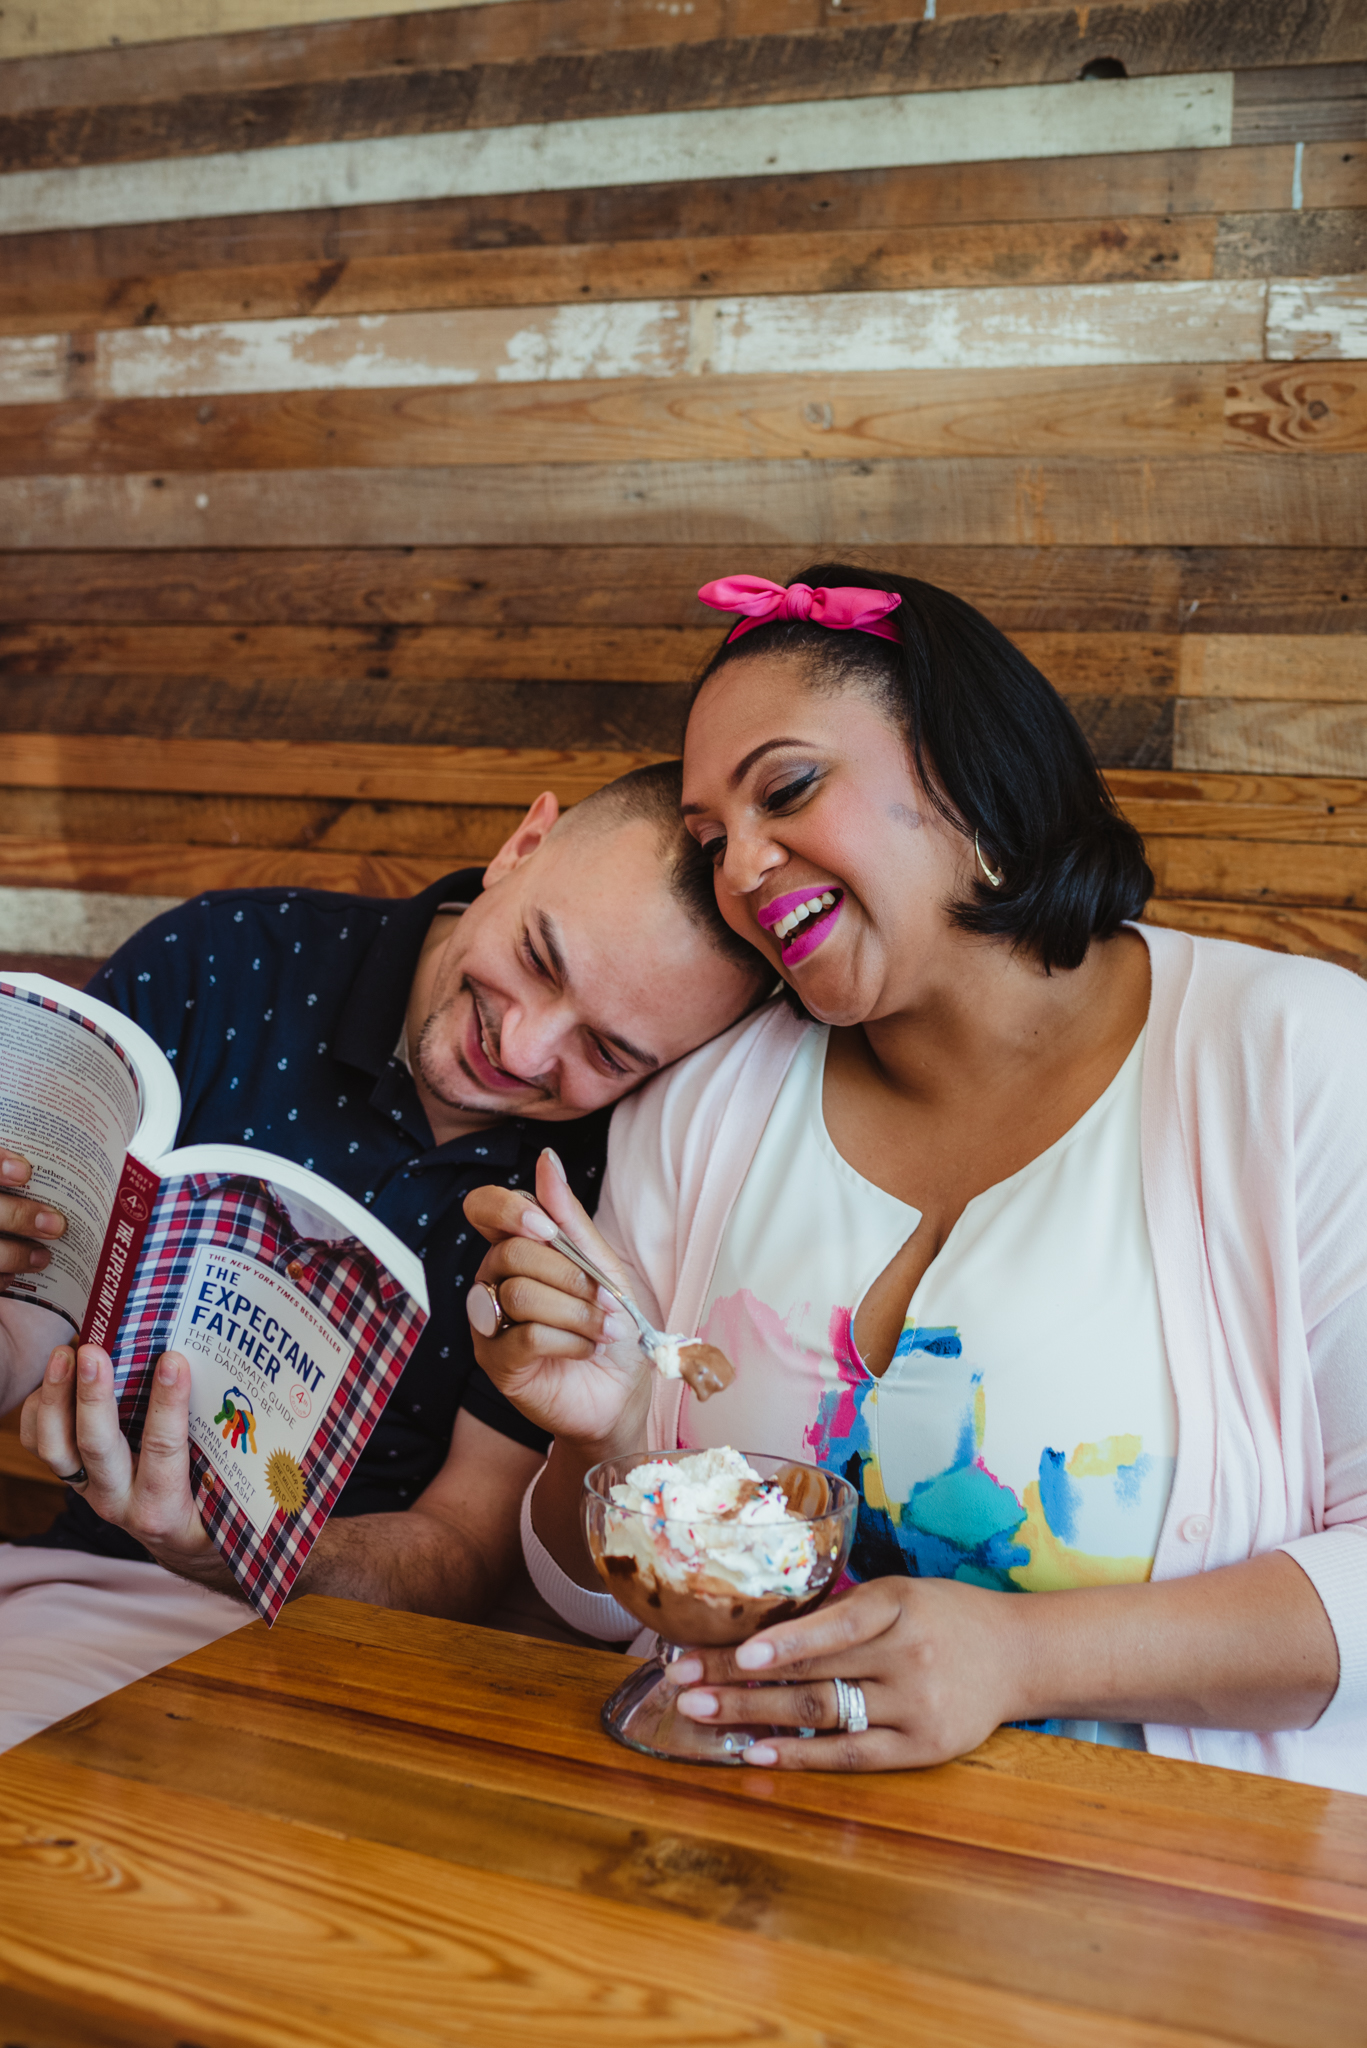 The parents to be read a parenting book and eat ice cream at The Parlour in Durham during their baby announcement photo session with Rose Trail Images.